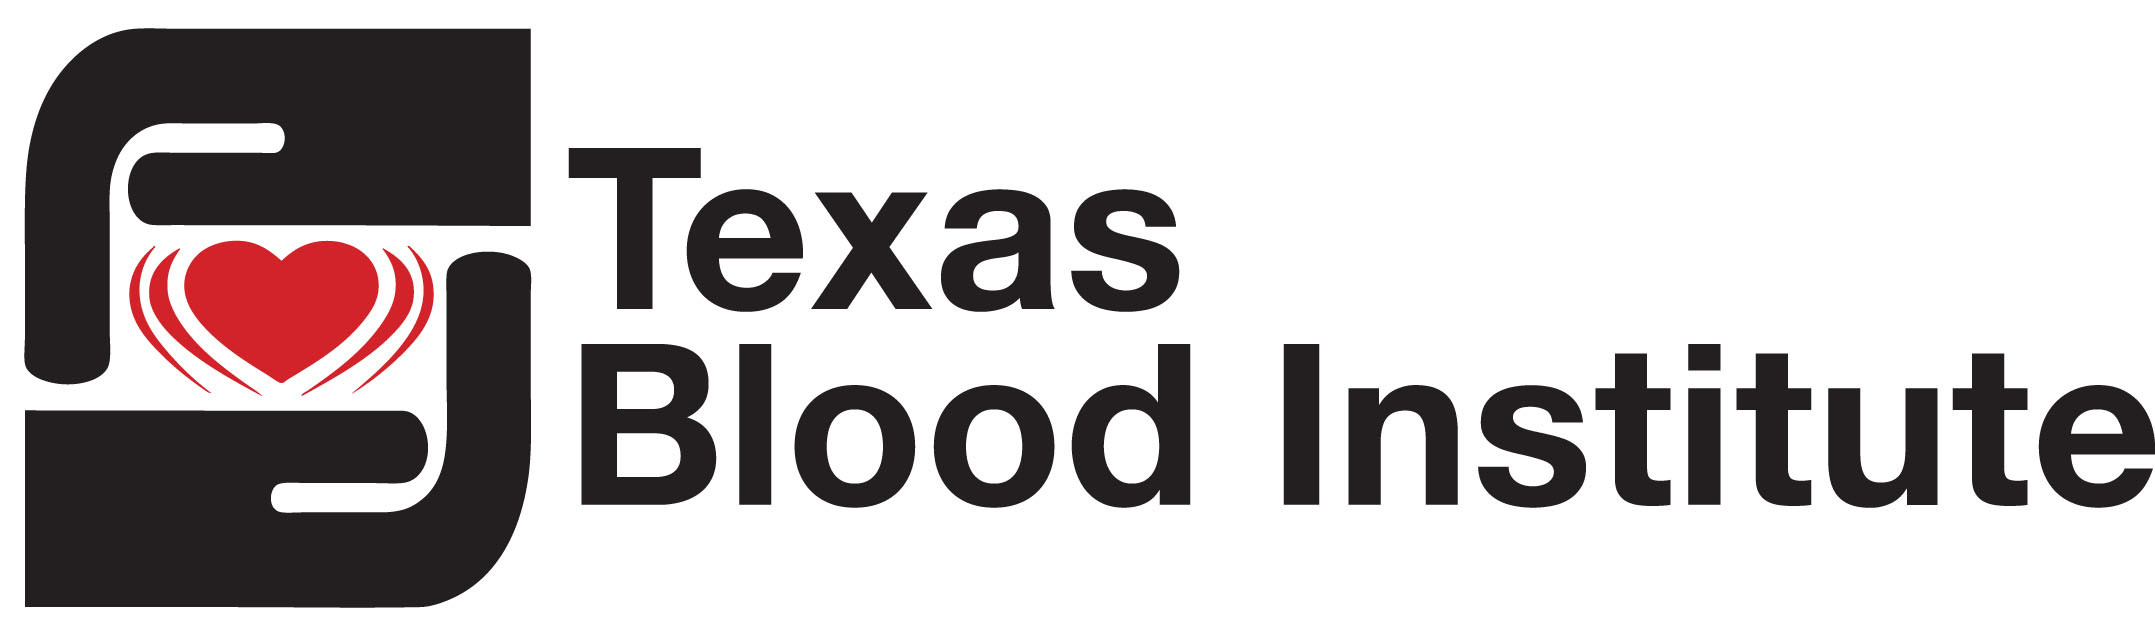 Texas blood institute